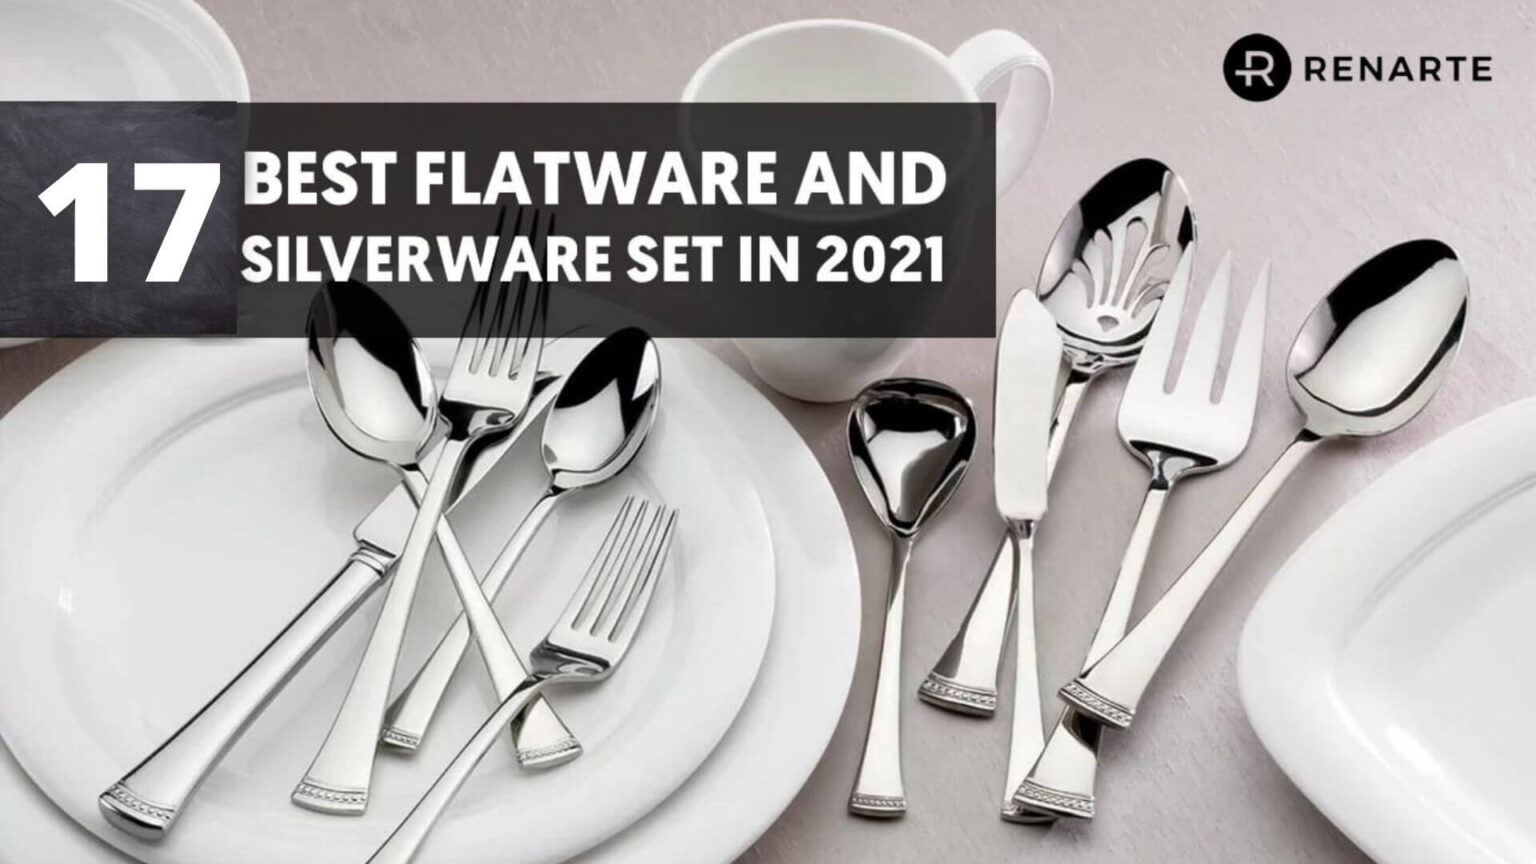 17 Best Flatware and Silverware Sets in 2021